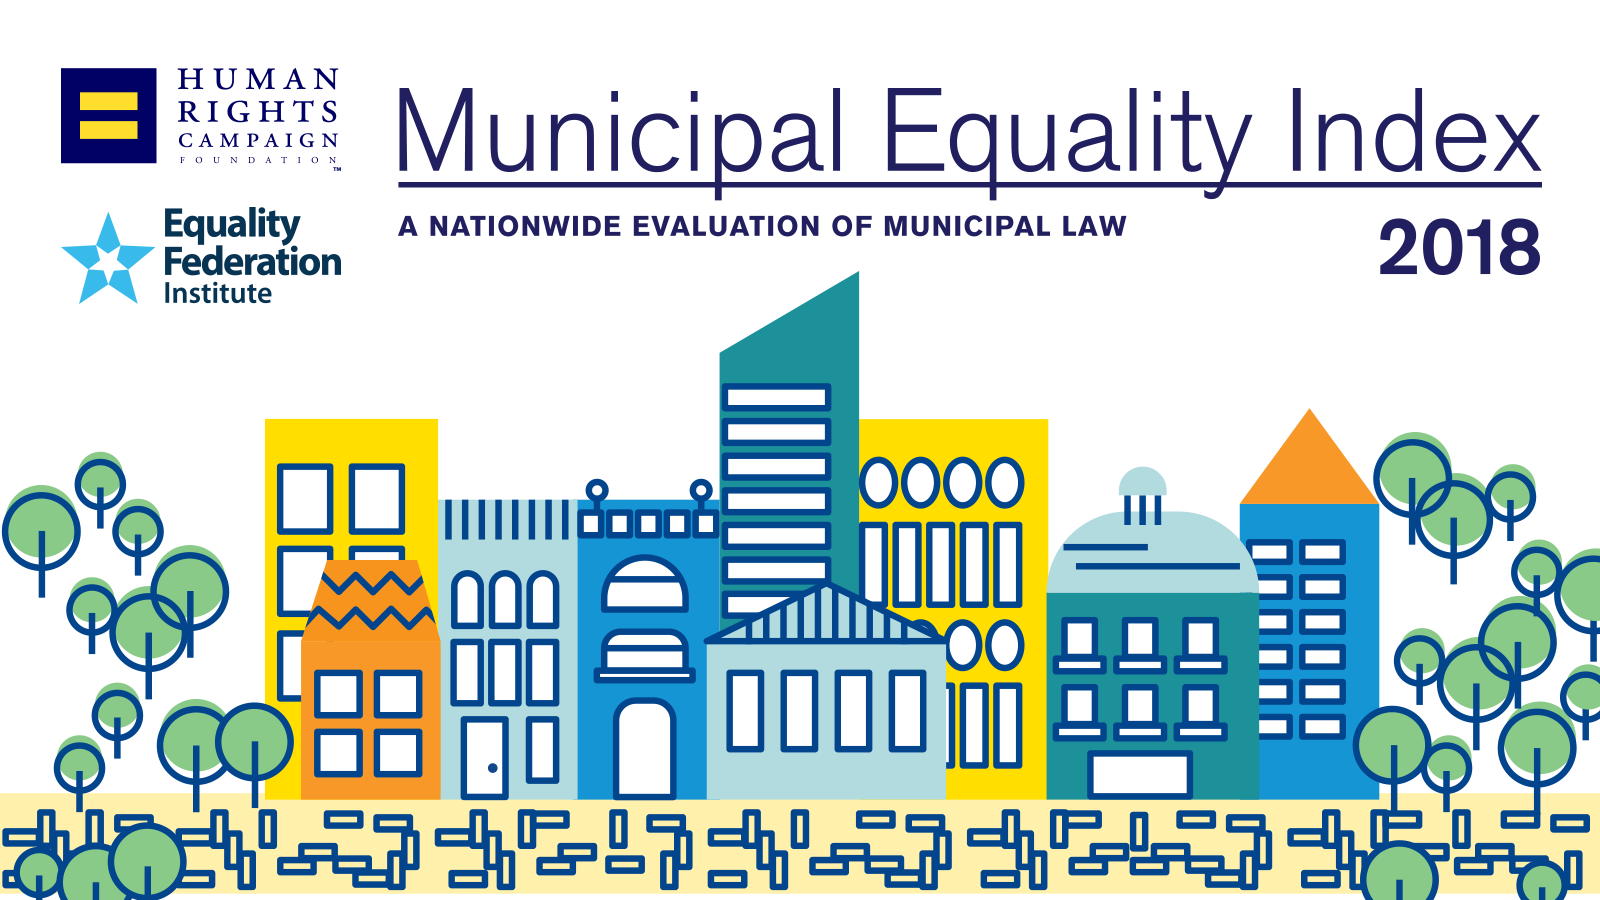 HRC Releases 2018 Municipal Equality Index Rating Cities on LGBTQ Inclusion